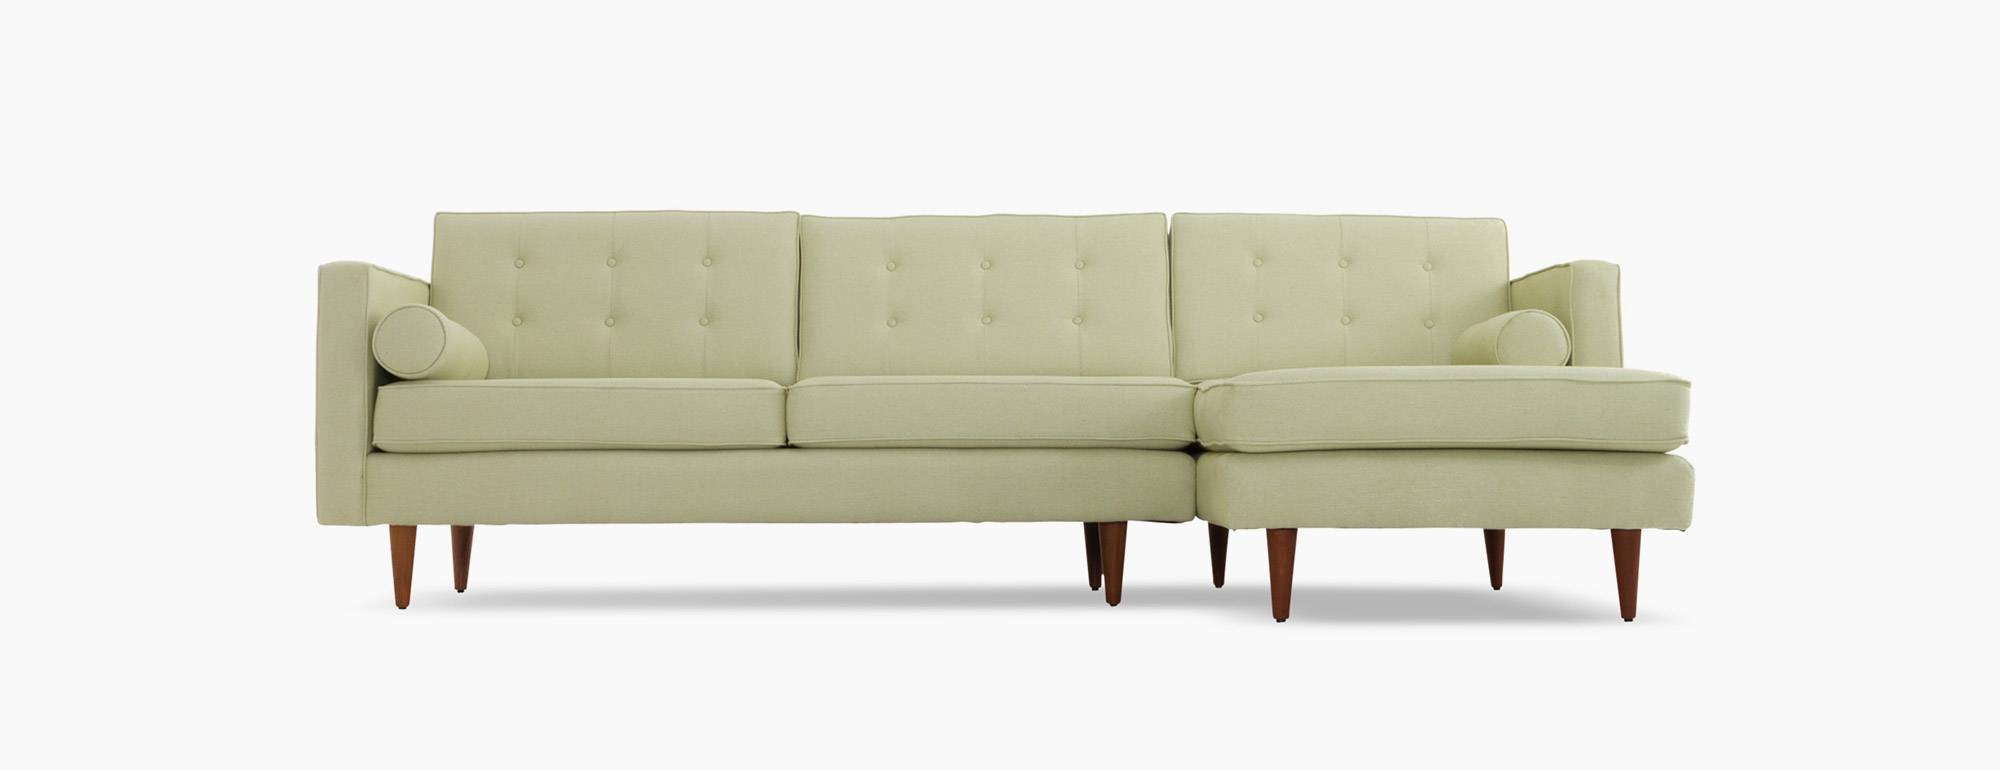 Braxton Sectional | Joybird in Braxton Sectional Sofas (Image 7 of 15)